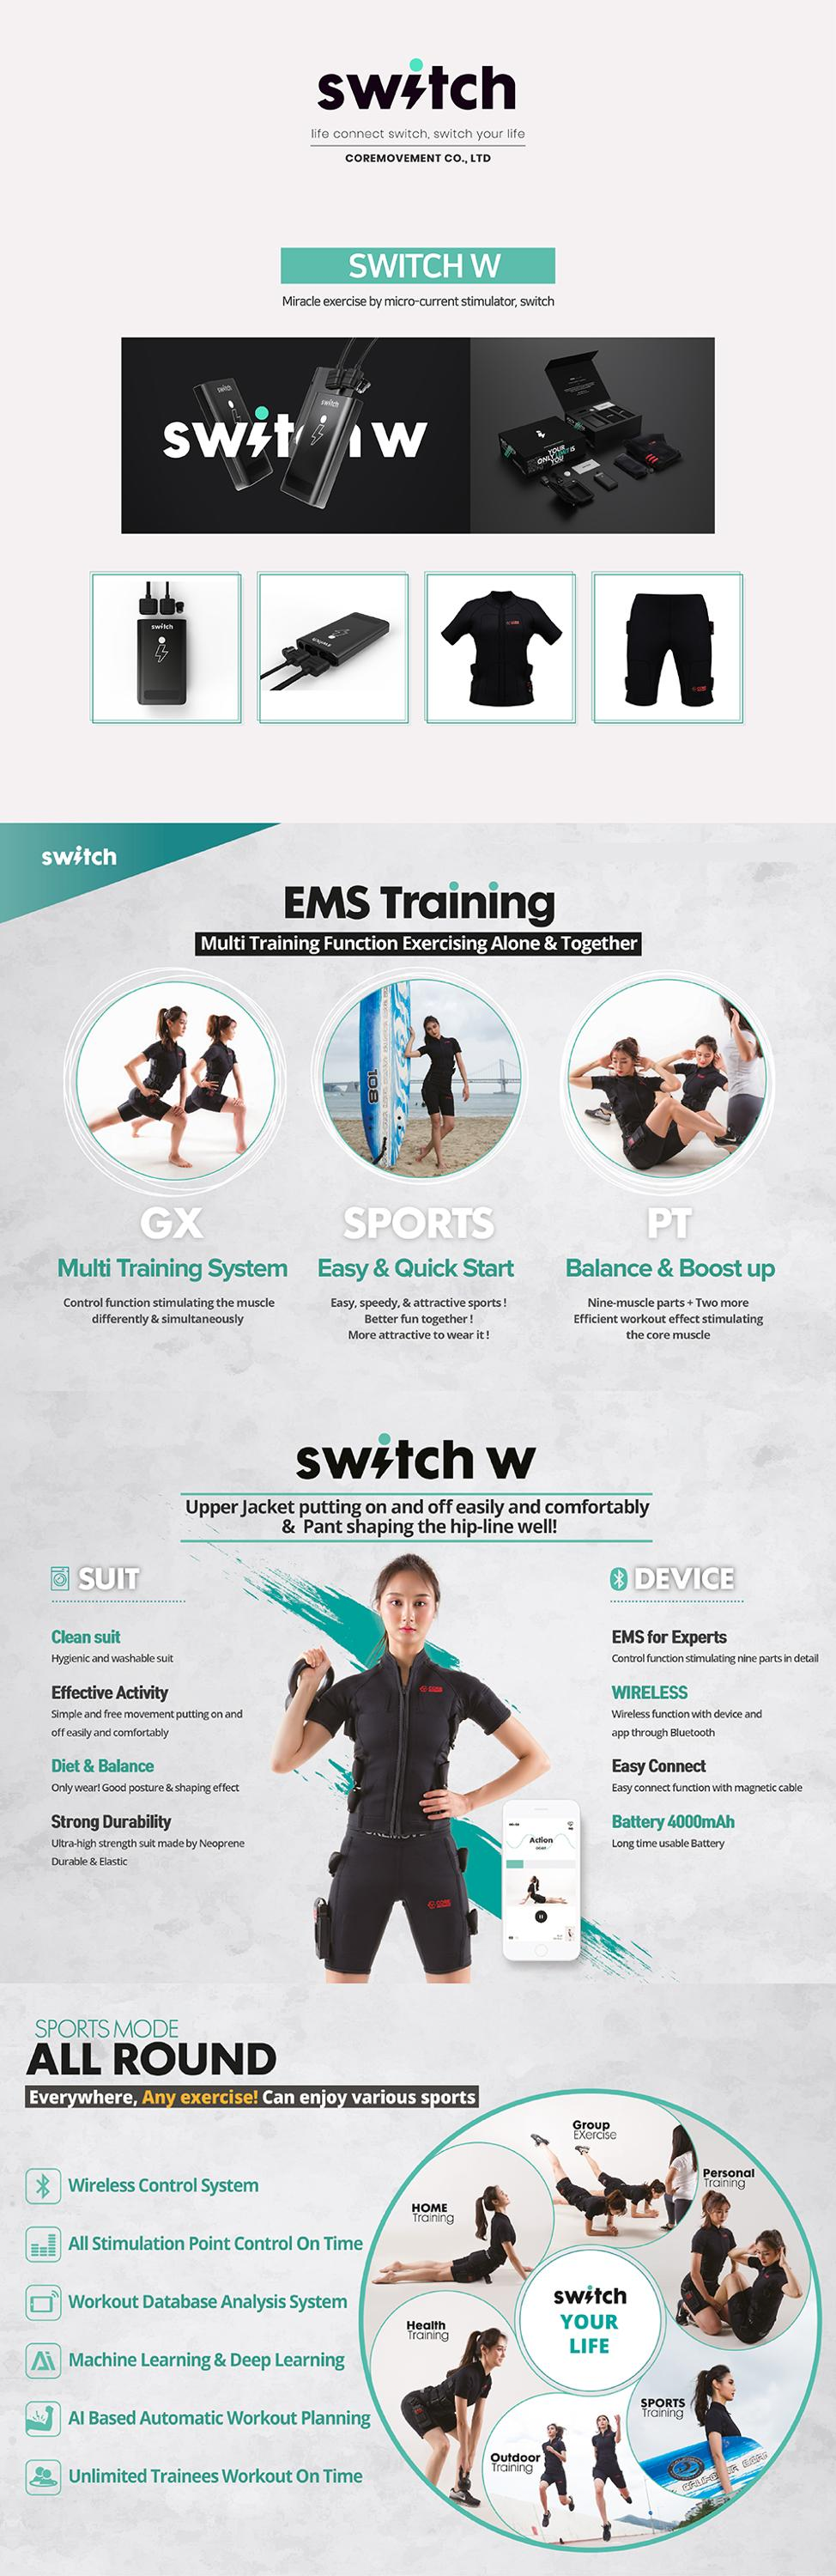 [SWITCH W] High Quality Korea Ems Training SuitためPersonal Group Workout Machine Full Body EmsワイヤレスSuit MadeでKorea